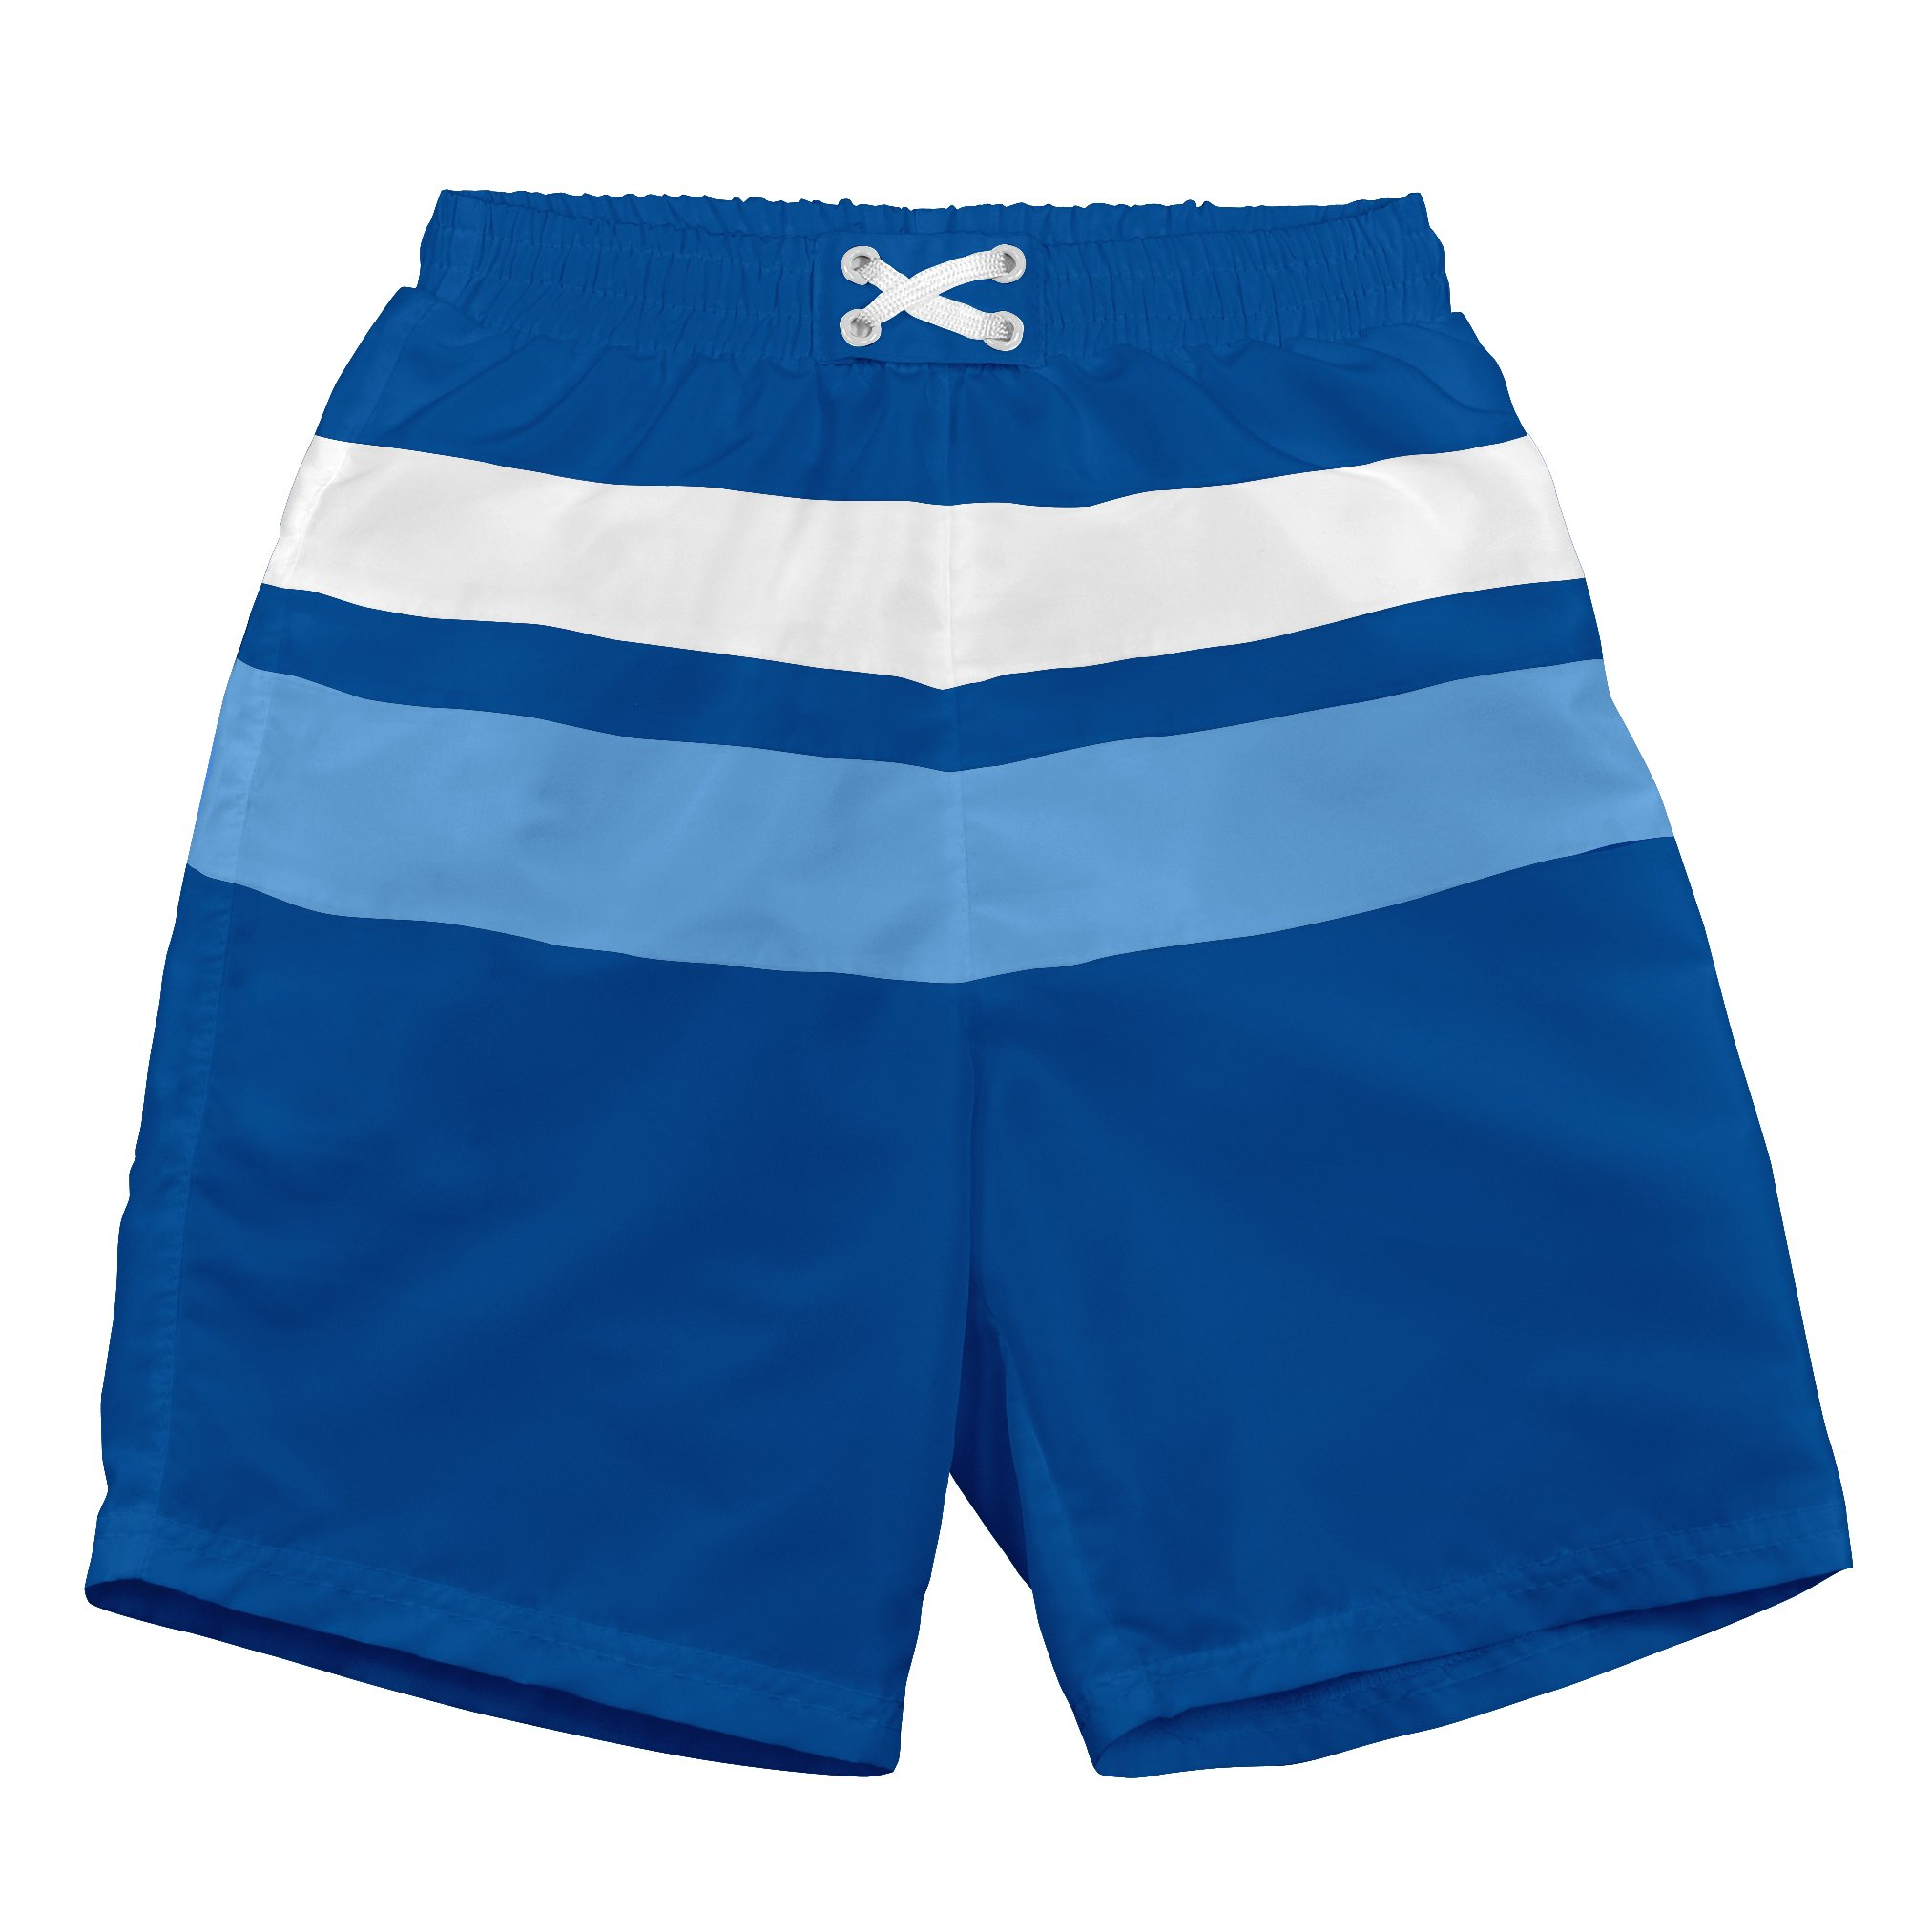 i play. Toddler Boys' Colorblock Trunks with Built-in Reusable Absorbent Swim Diaper, Royal, 3T by i play.